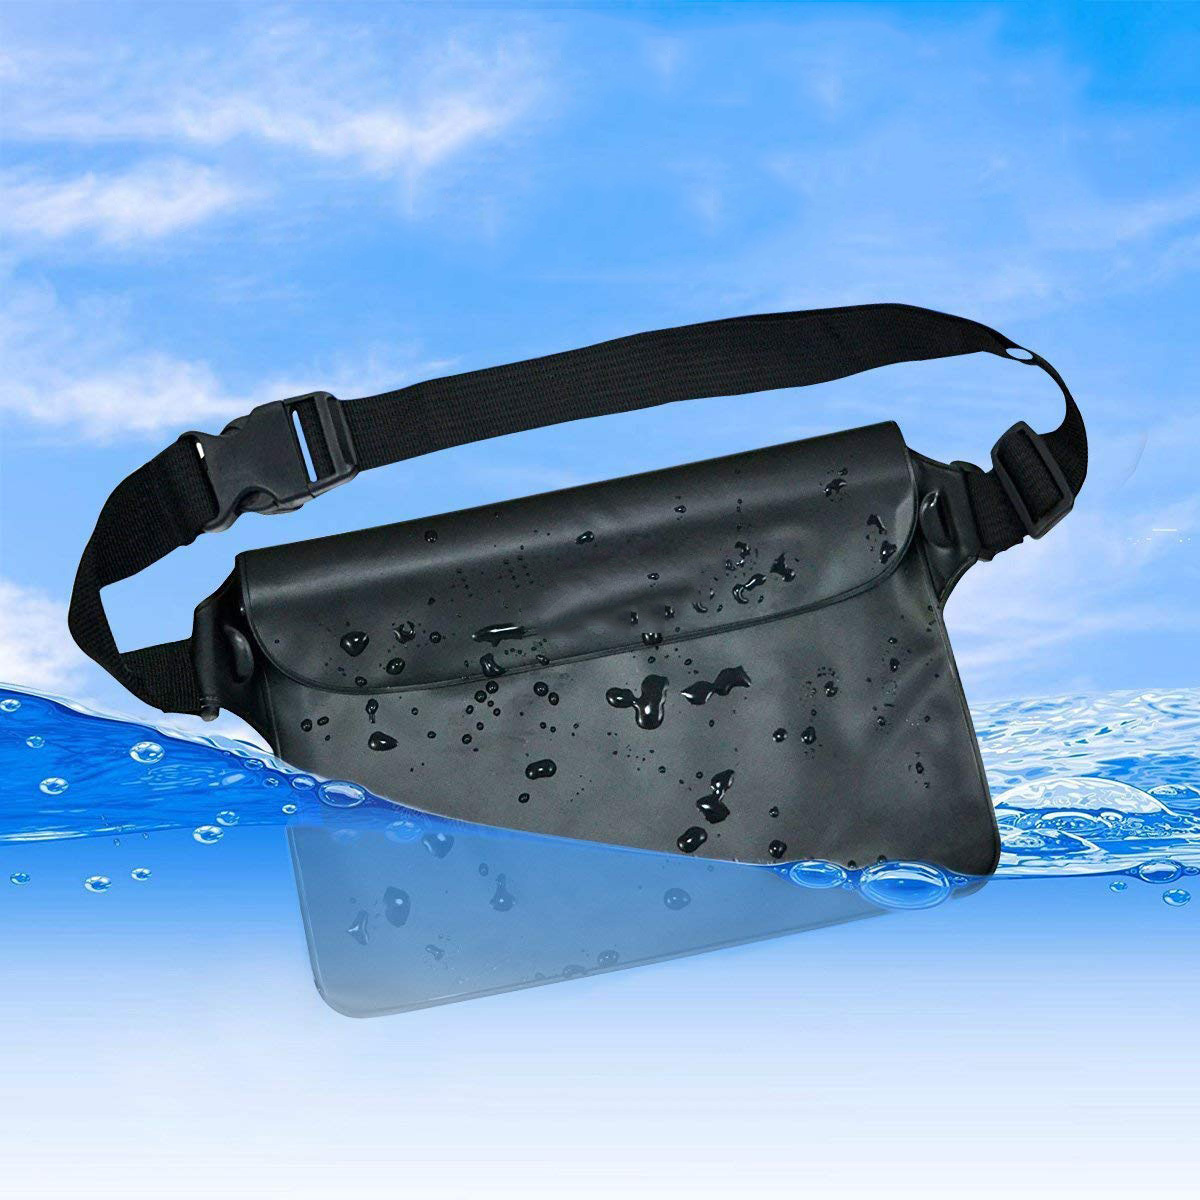 Three Sealing Diving Anti-Steal Bag PVC Beach Bag Swimming Drifting Debris Storage Bag Foreign Trade Waterproof Waist Bag